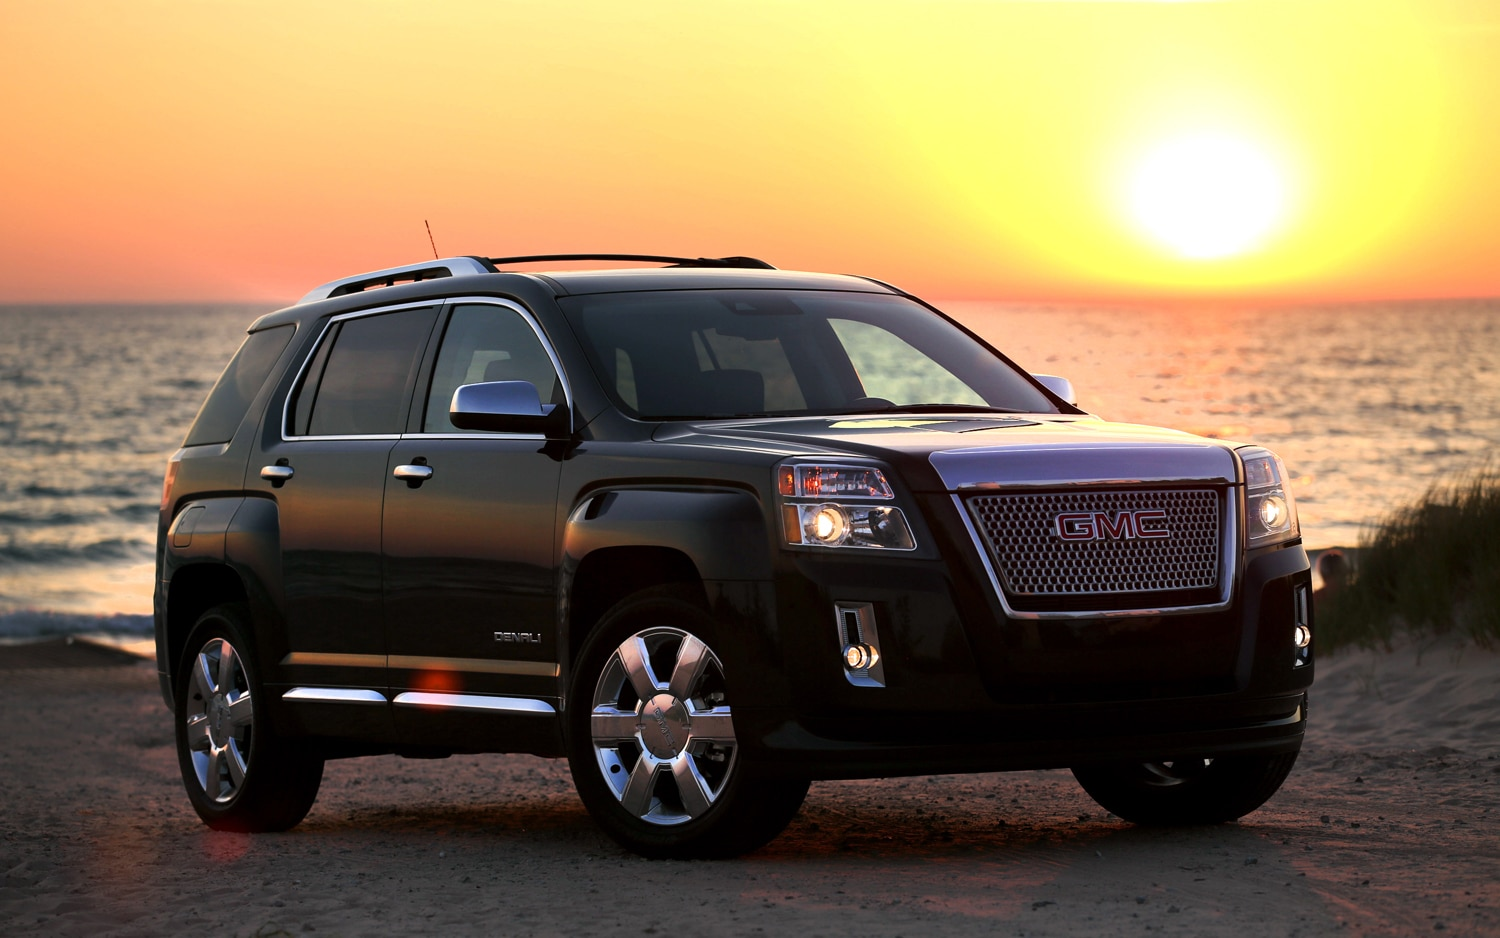 gmc terrain denali cars cargurus drive suv front side terrian research automobile site exterior interior